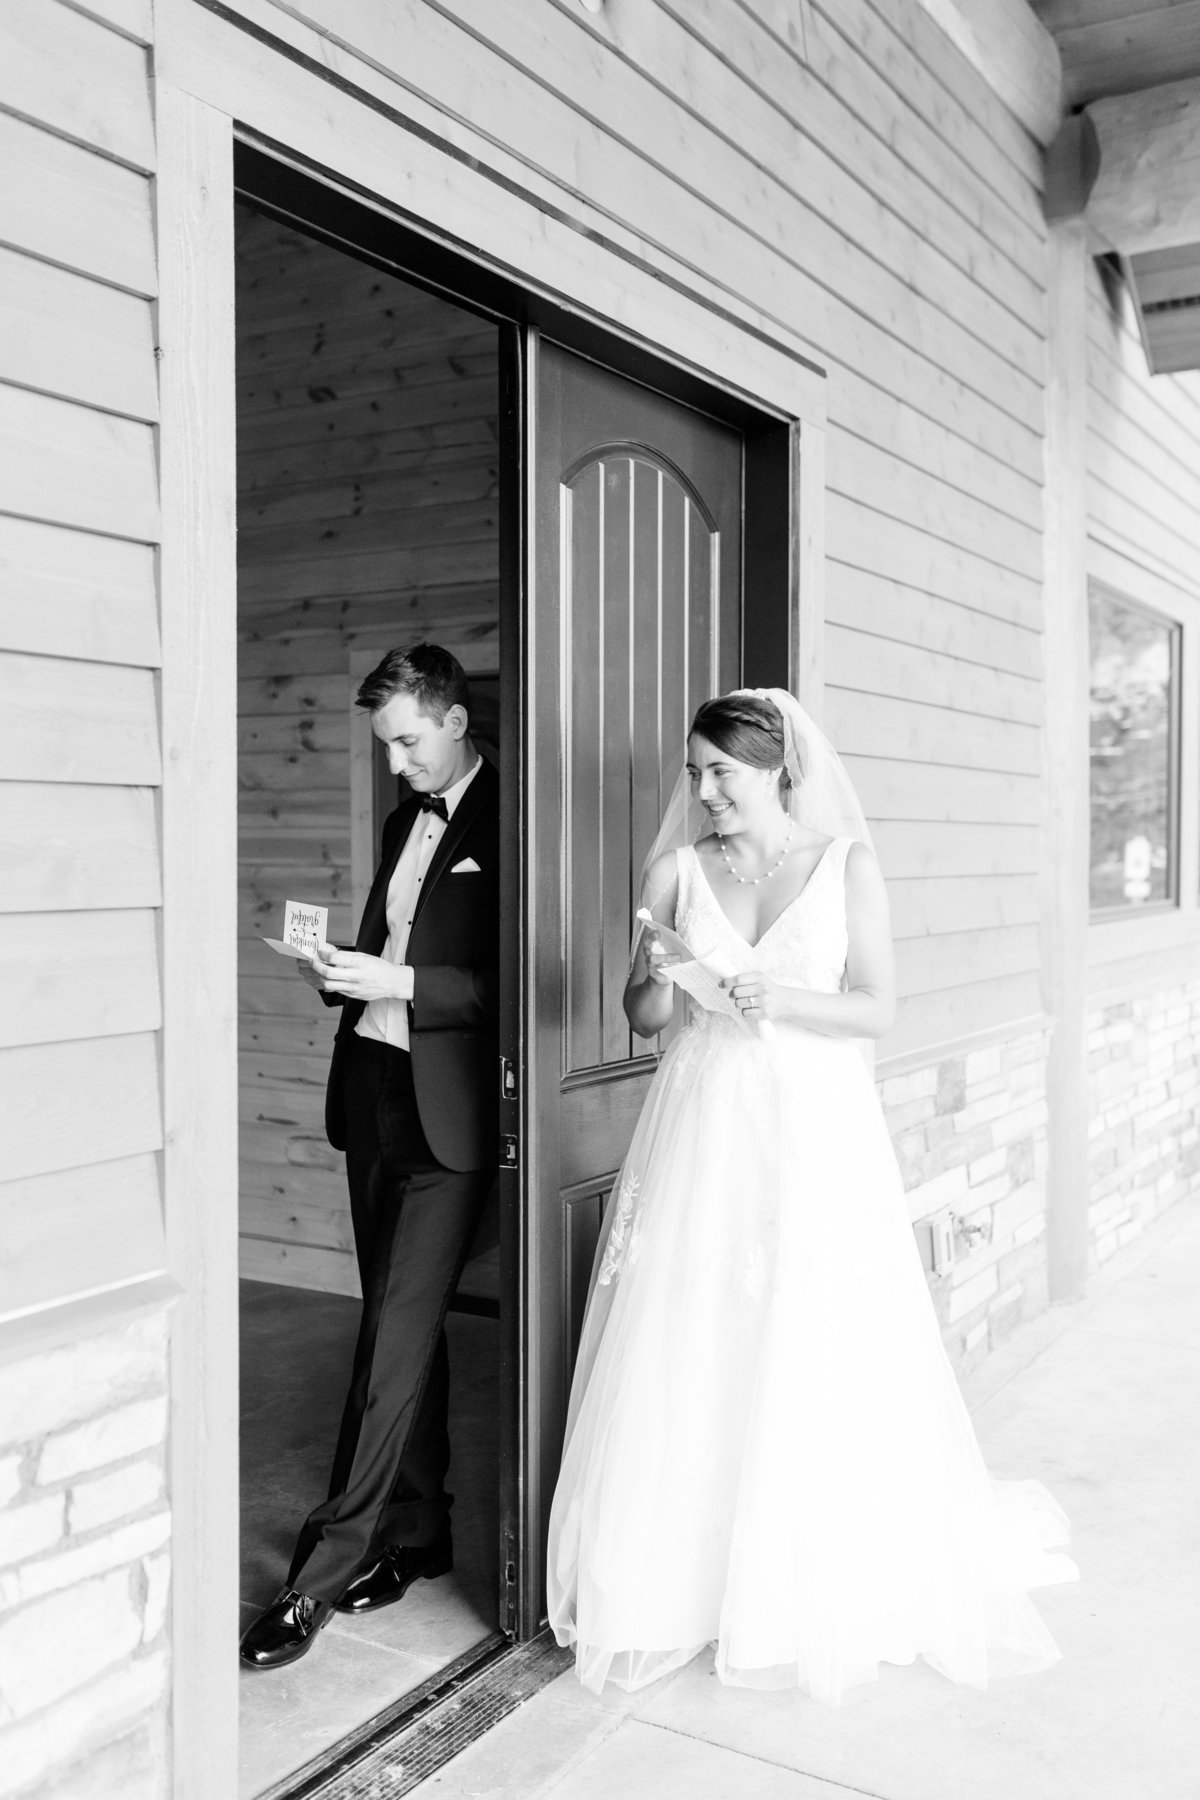 HYP_Kristina_and_Benedikt_Wedding_0034